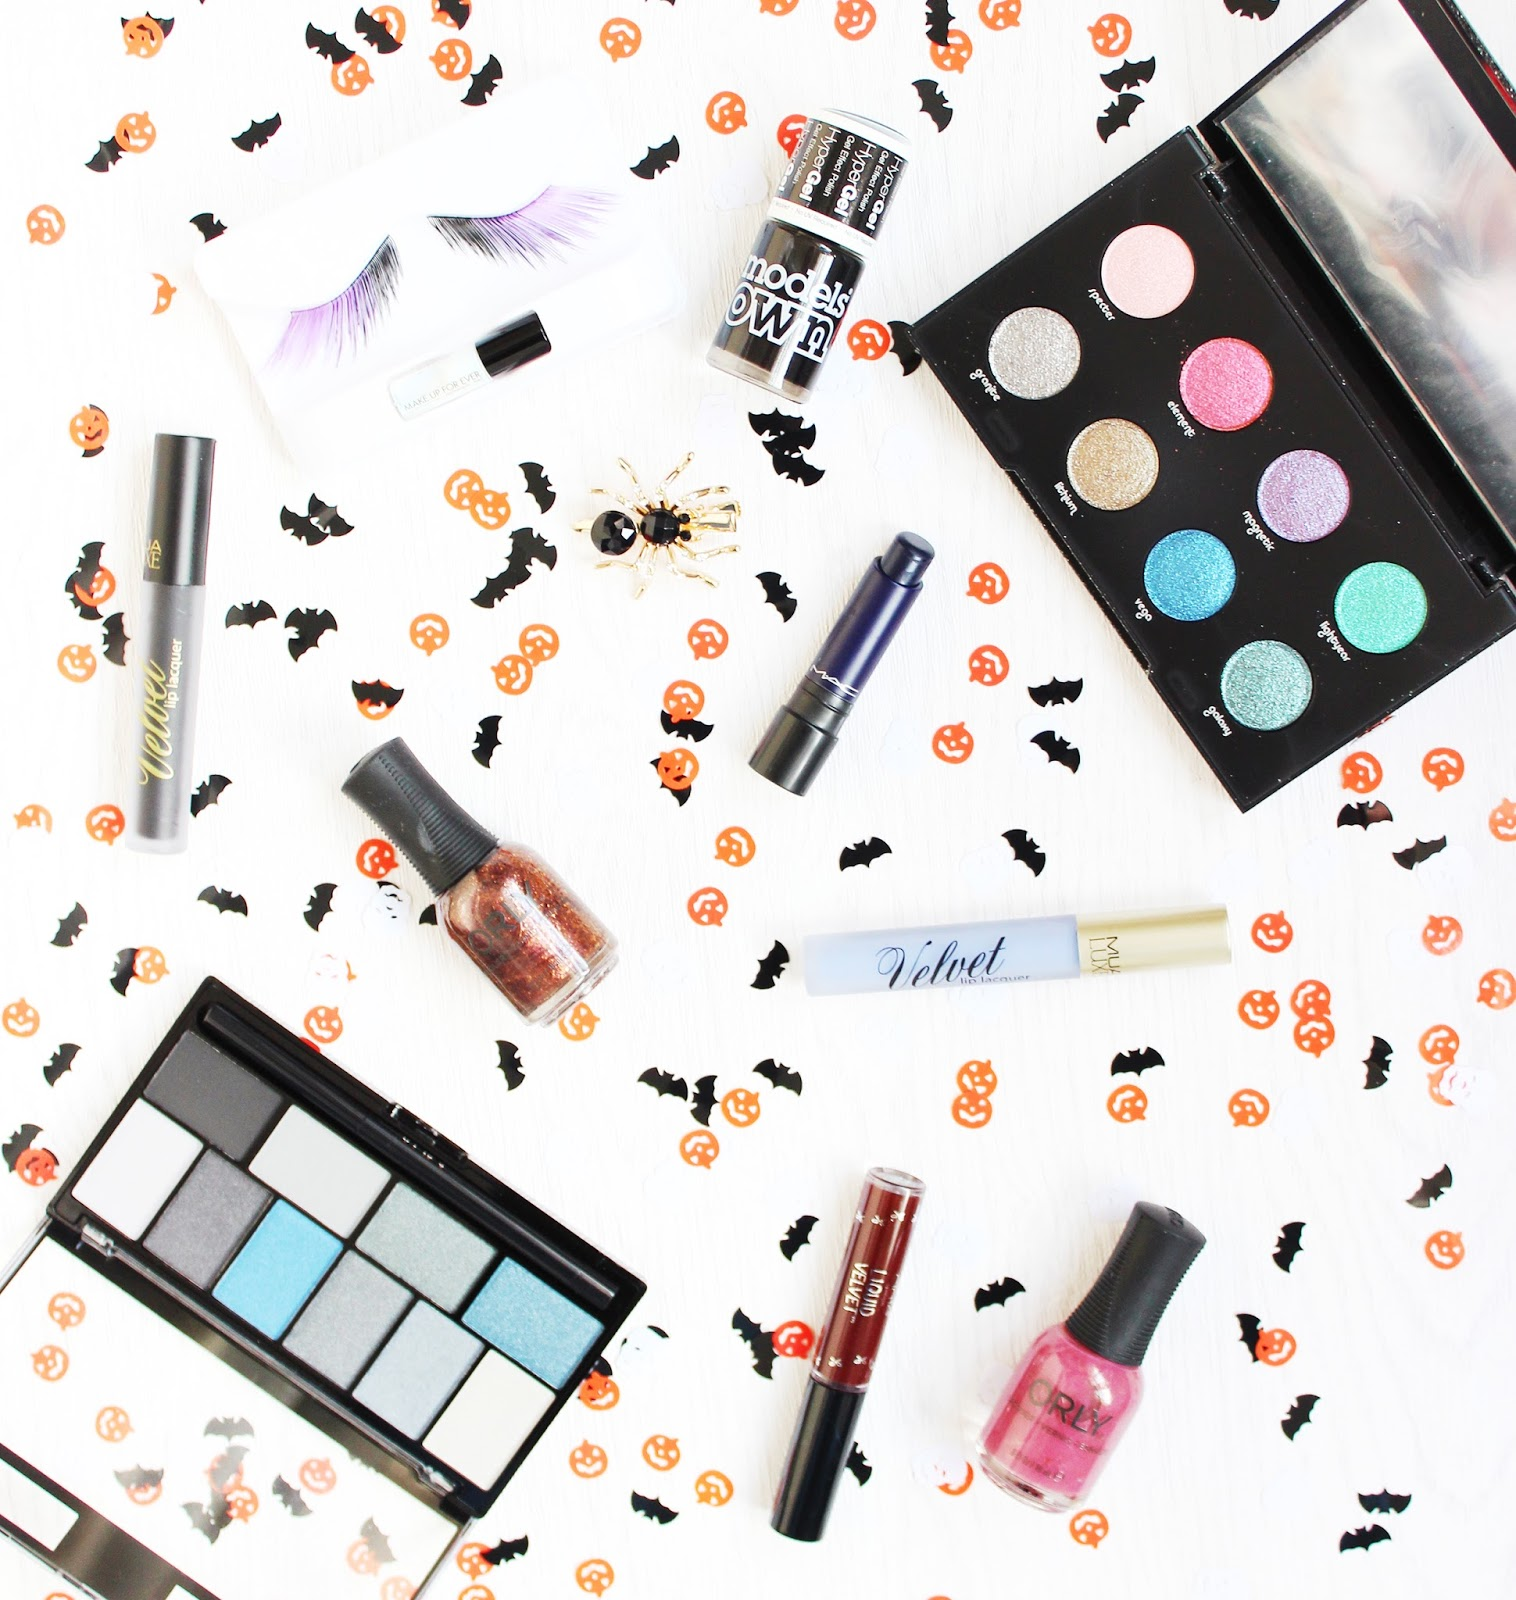 9 beauty products for a quick and easy Halloween makeover